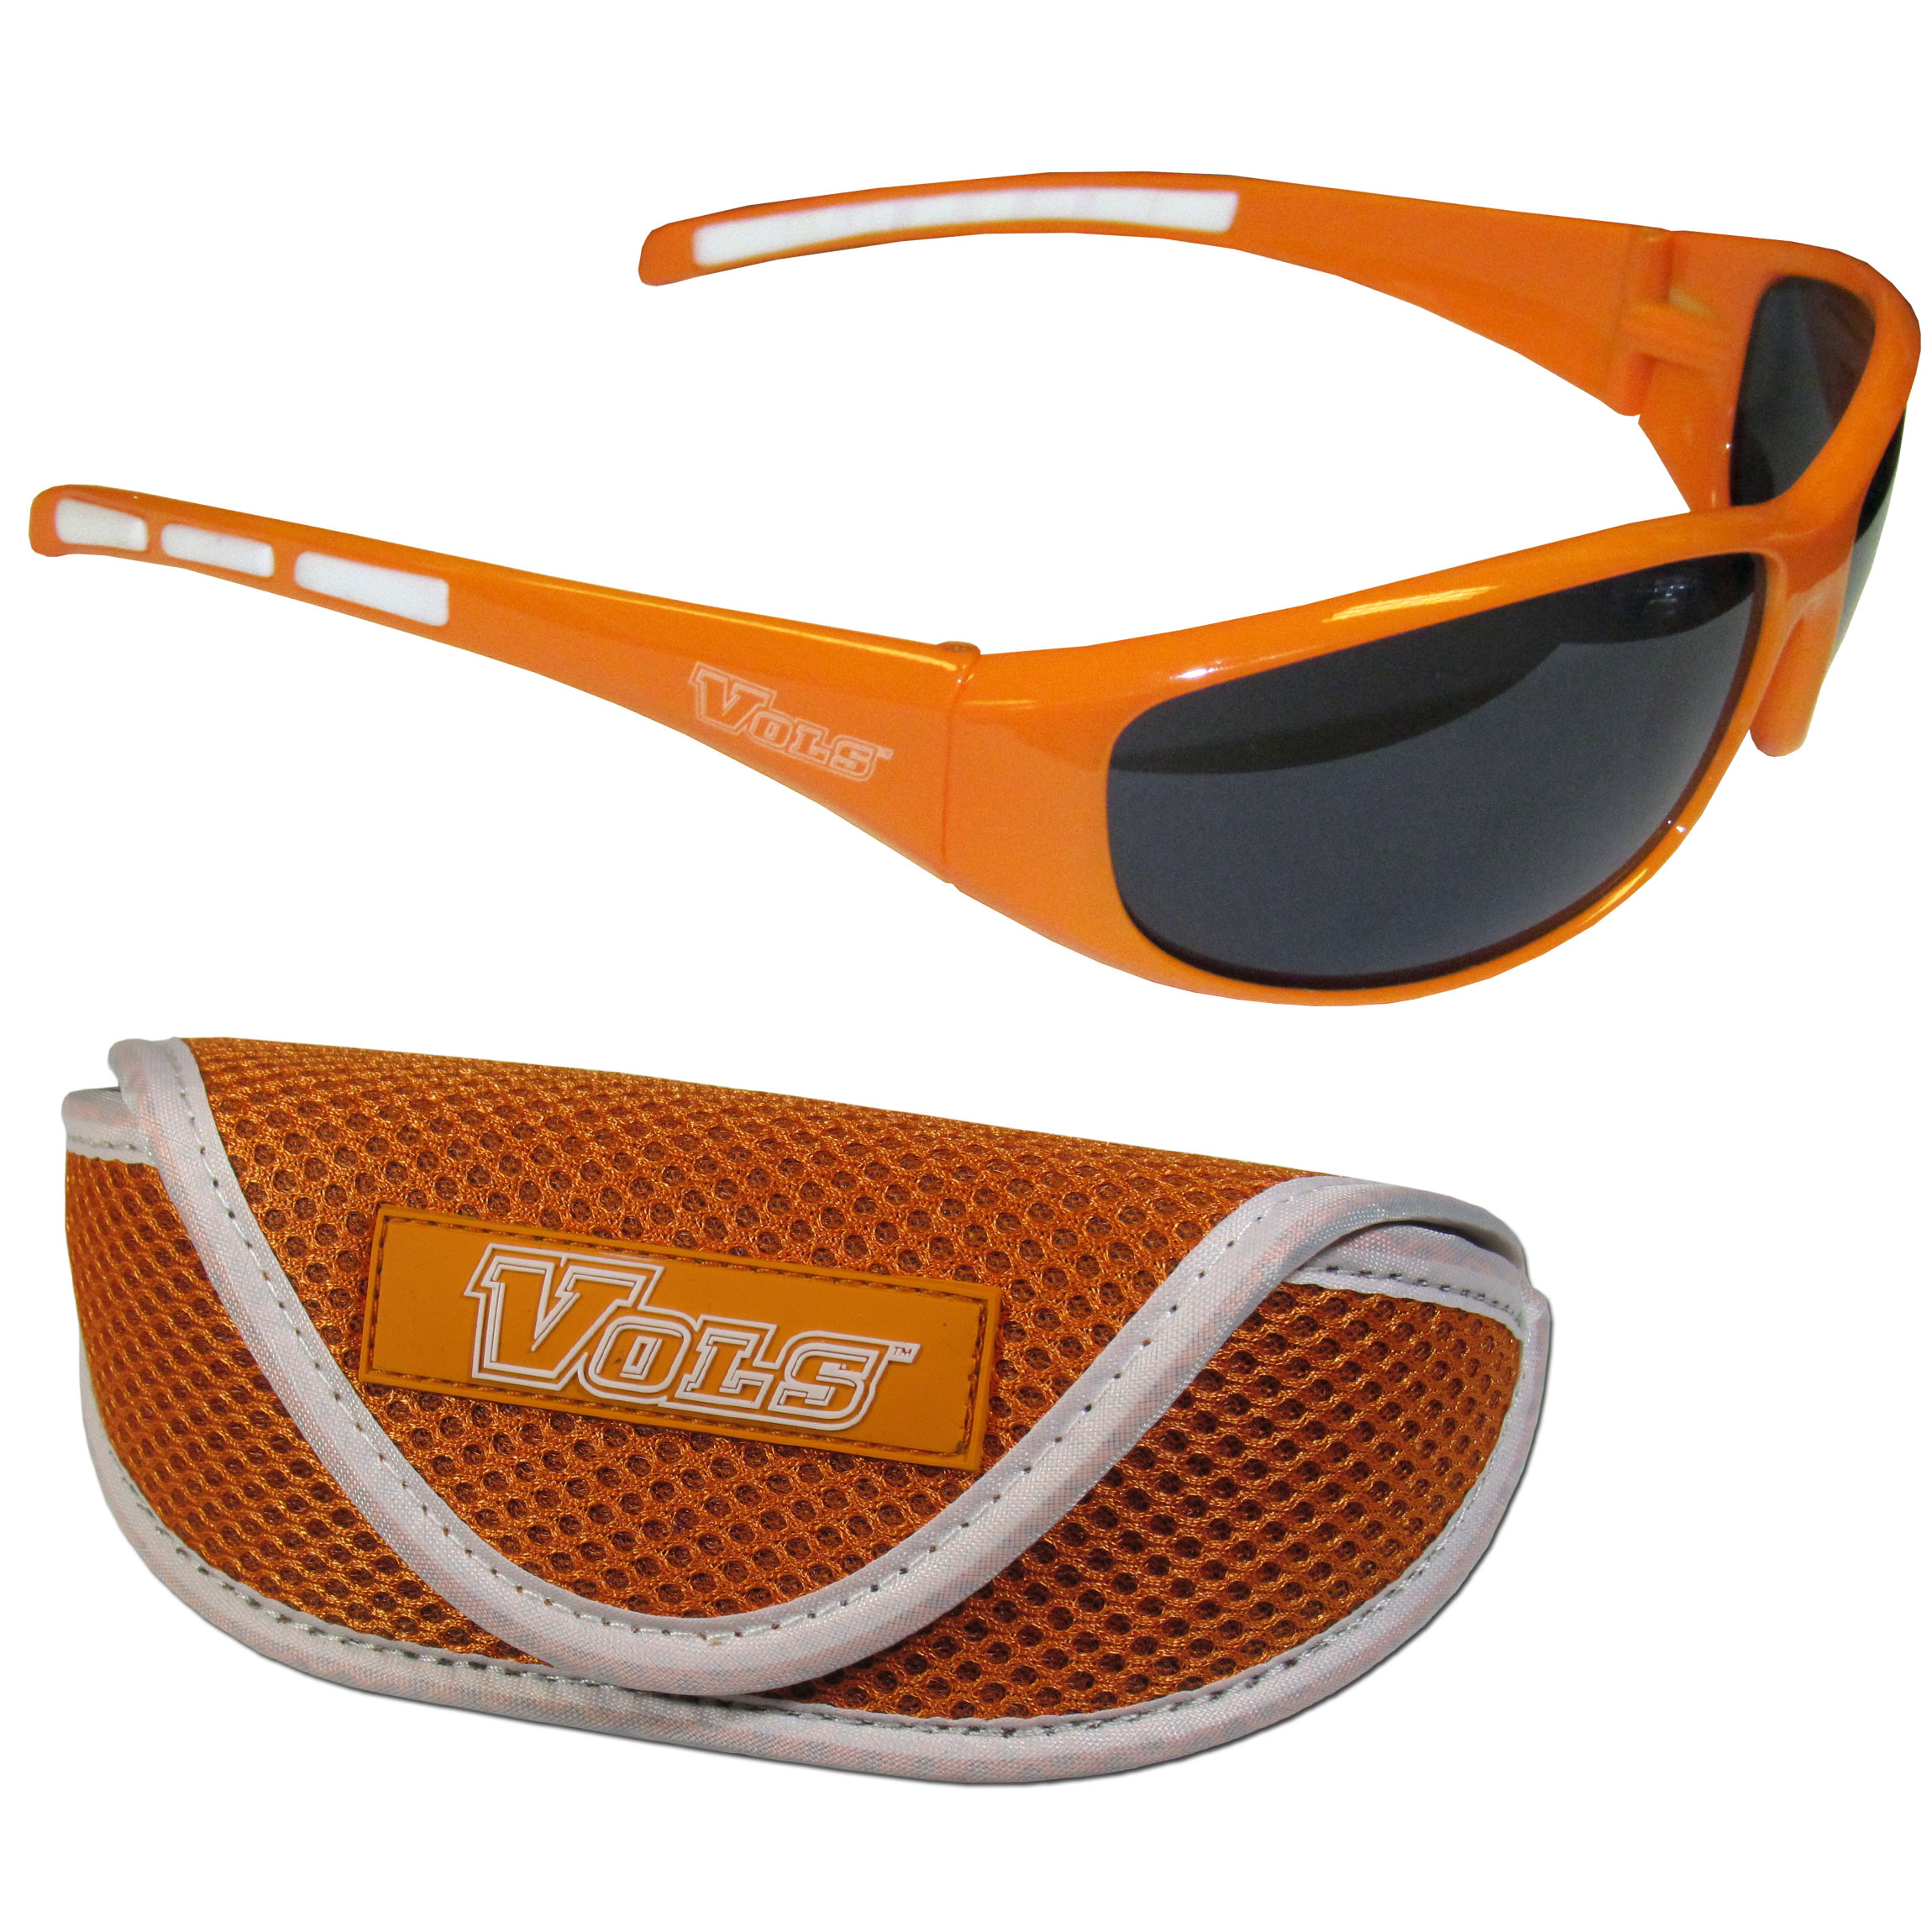 Tennessee Volunteers Wrap Sunglass and Case Set - This great set includes a high quality pair of Tennessee Volunteers wrap sunglasses and soft sport carrying case.